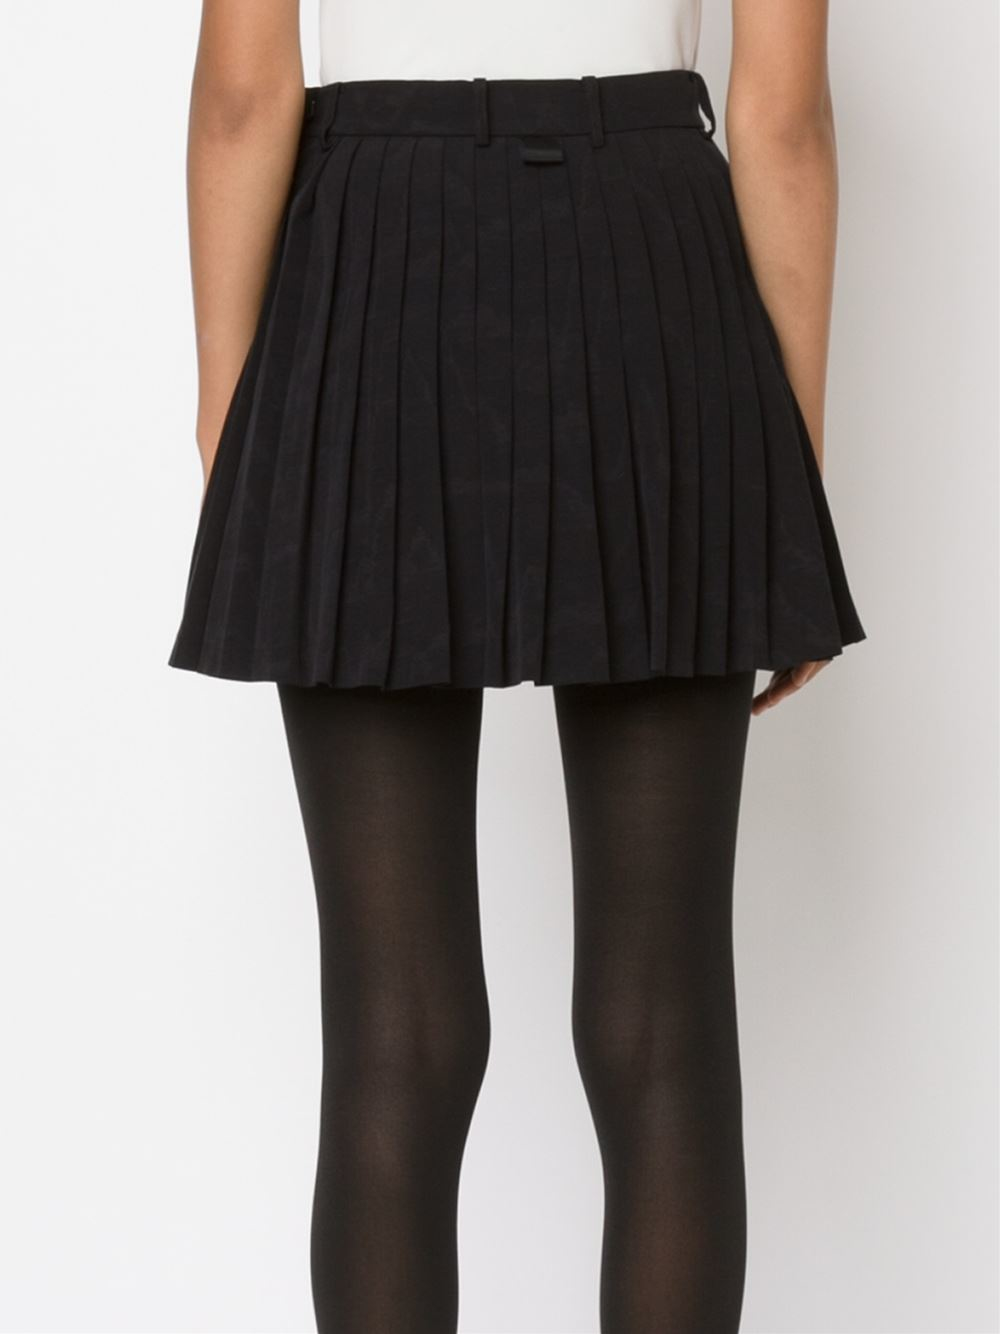 Thom browne Pleated Mini-skirt in Black | Lyst